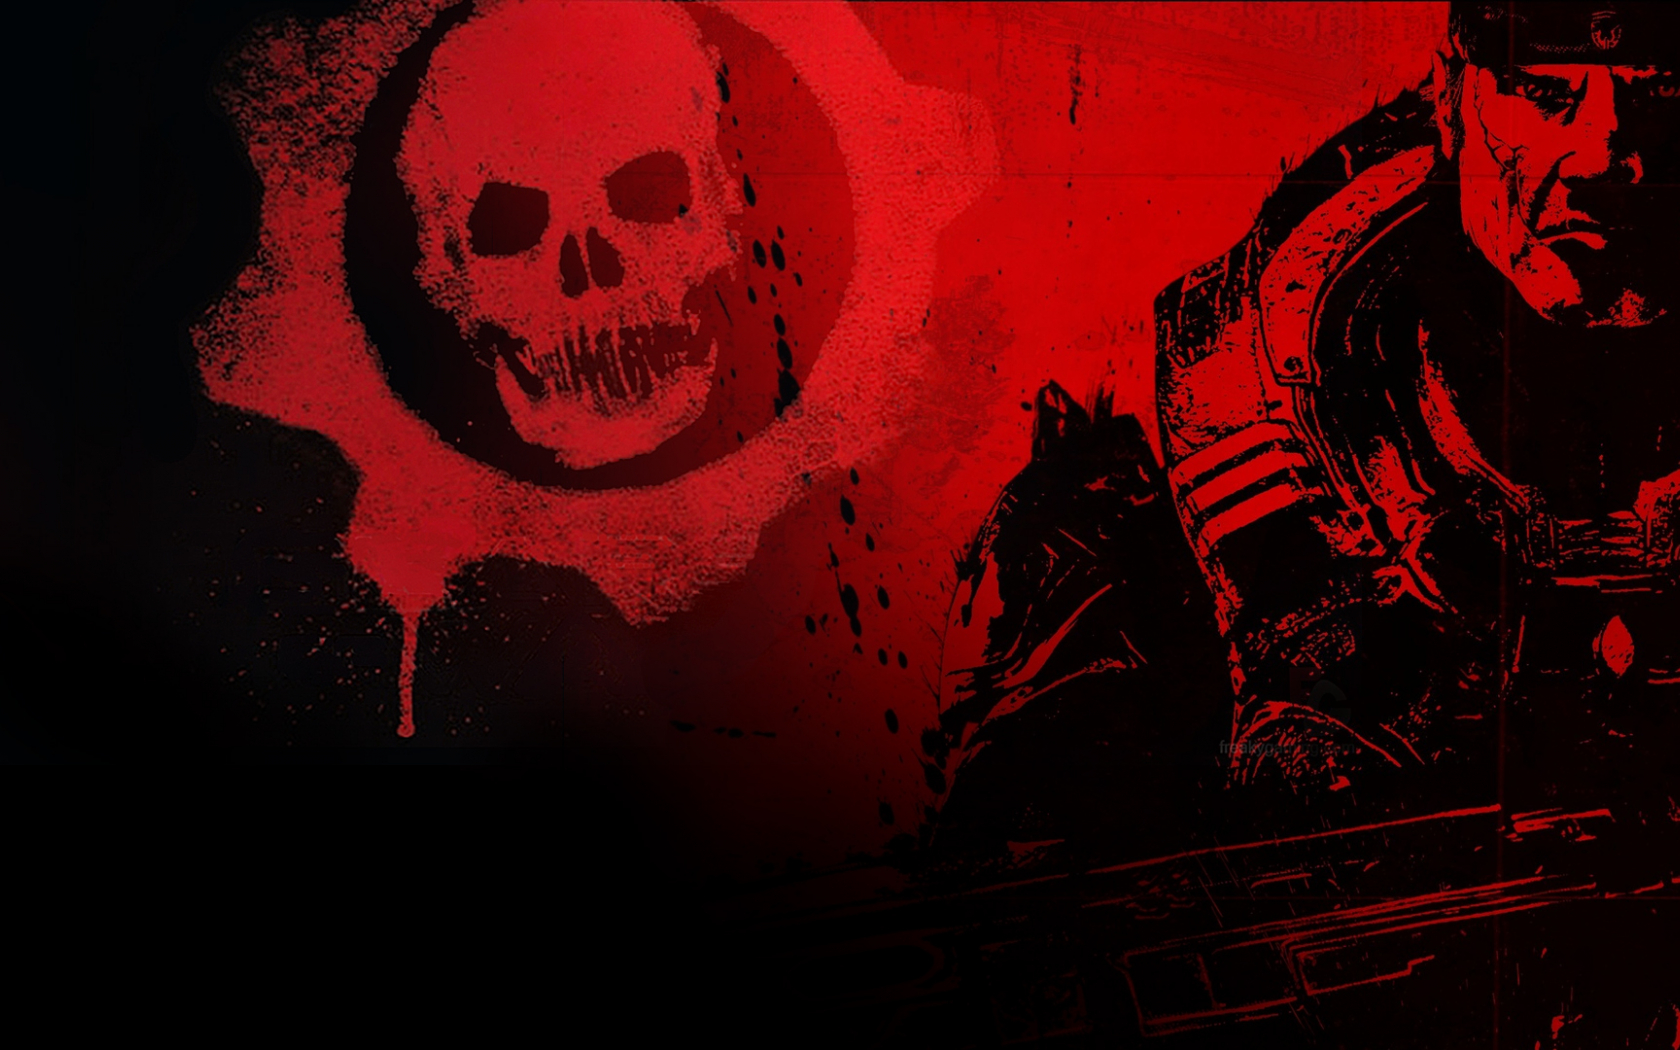 Free Download Gears Of War Logo Wallpaper 222365 1920x1080 For